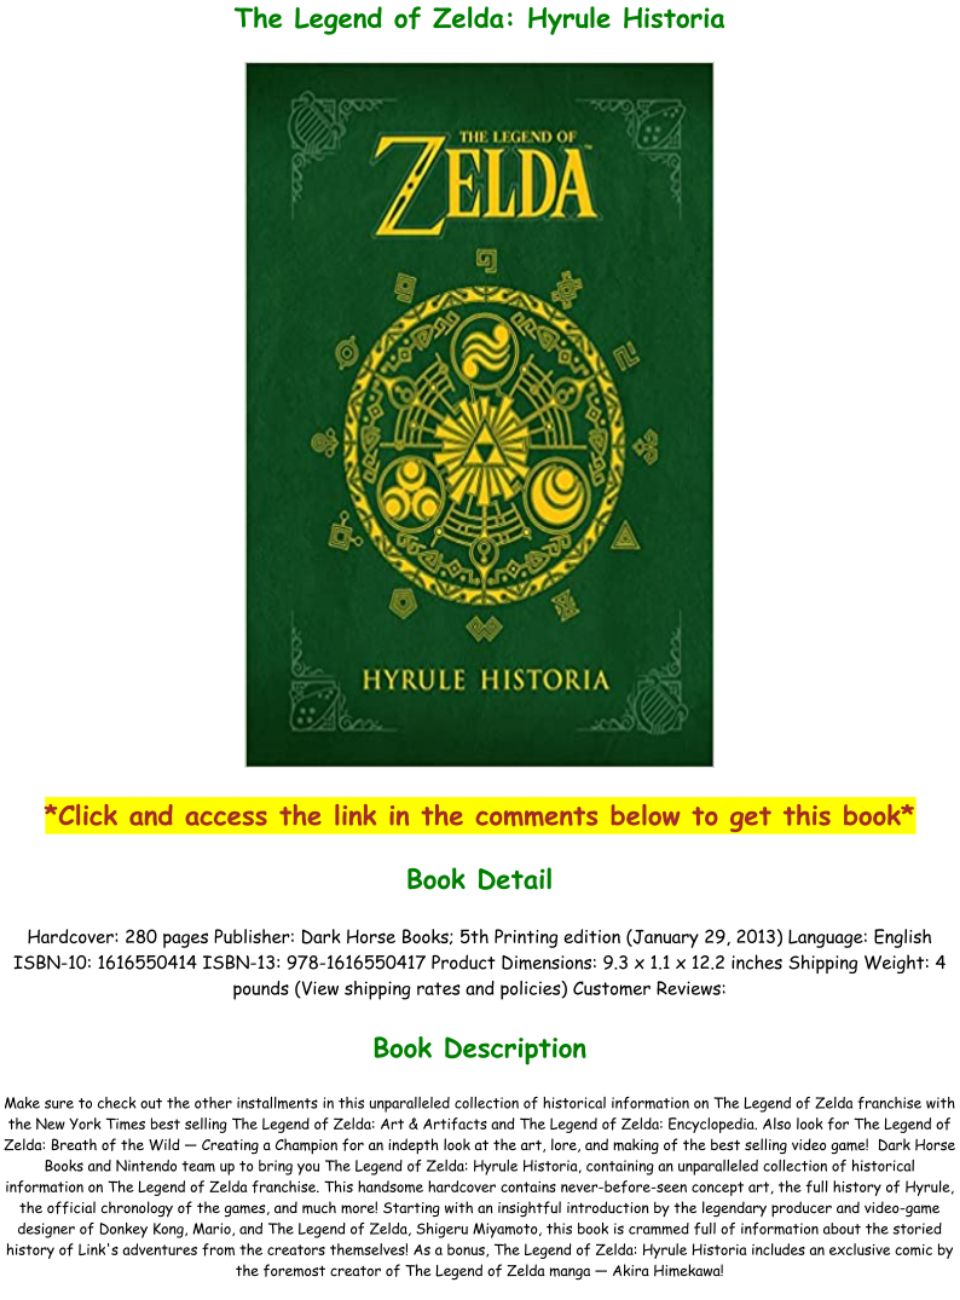 Download Pdf The Legend Of Zelda Hyrule Historia Full Pdf Text Images Music Video Glogster Edu Interactive Multimedia Posters